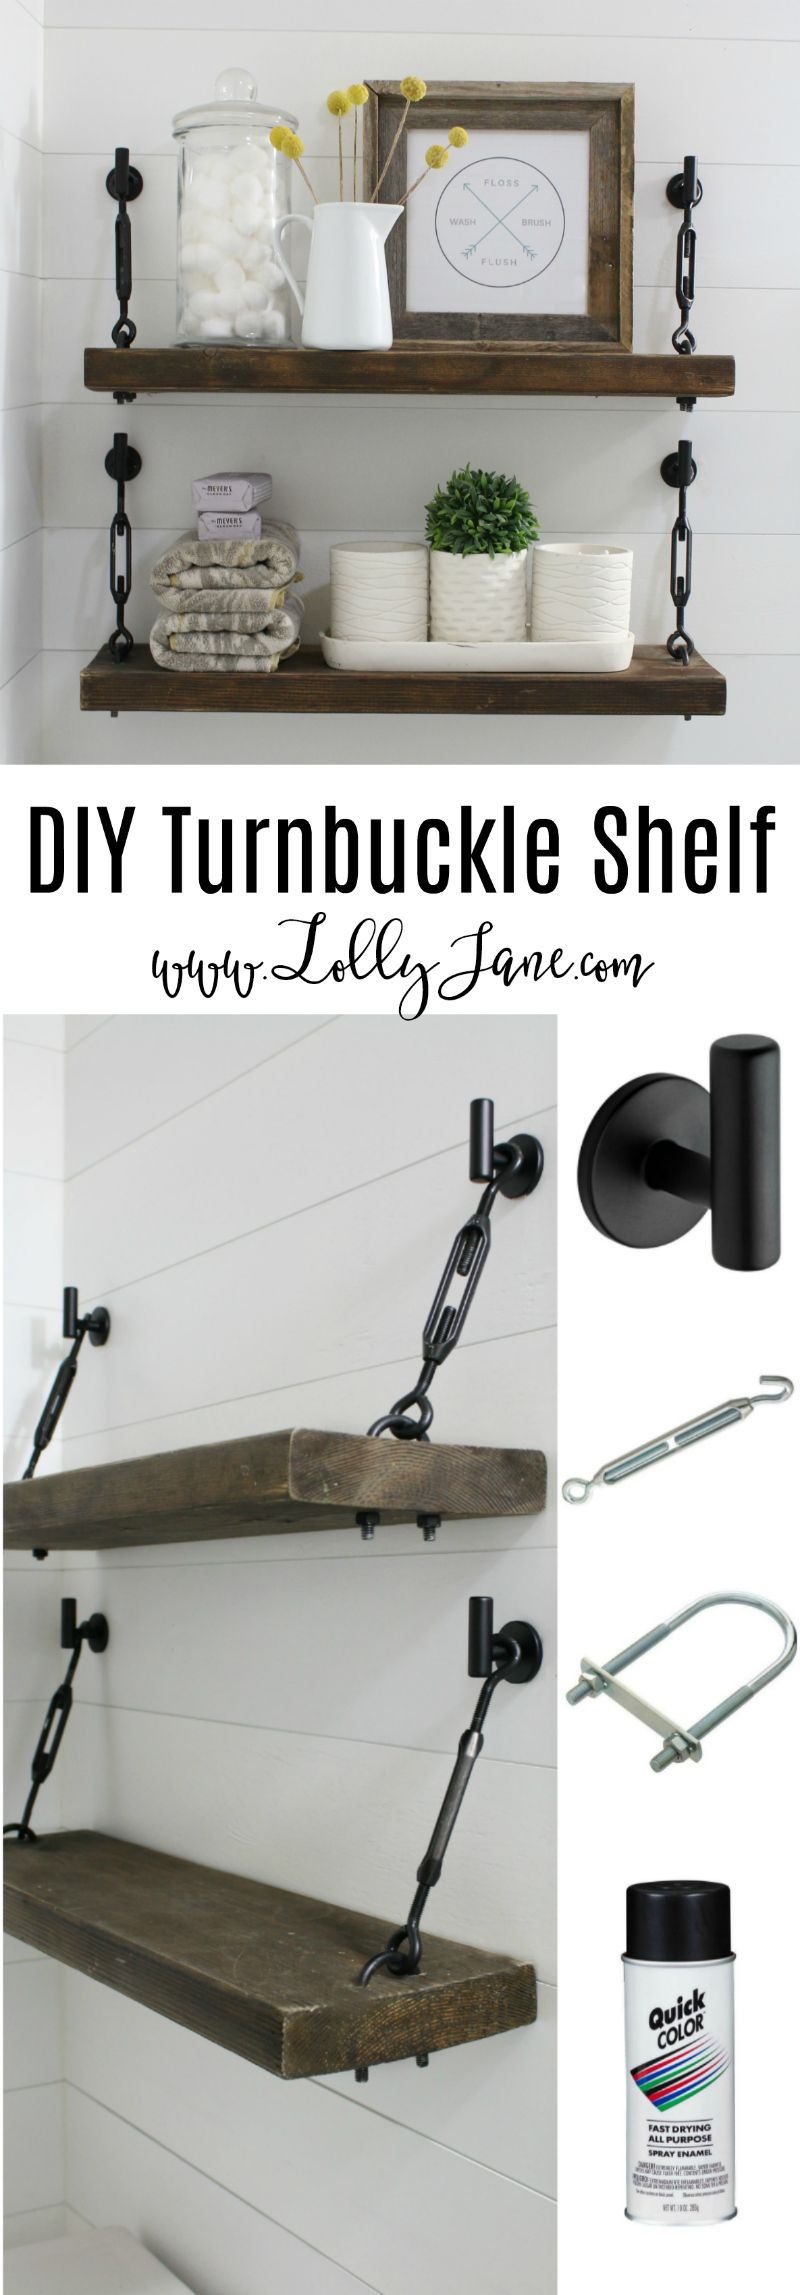 DIY Turnbuckle Shelf - A Great Bathroom Addition | Pinterest | Regal ...